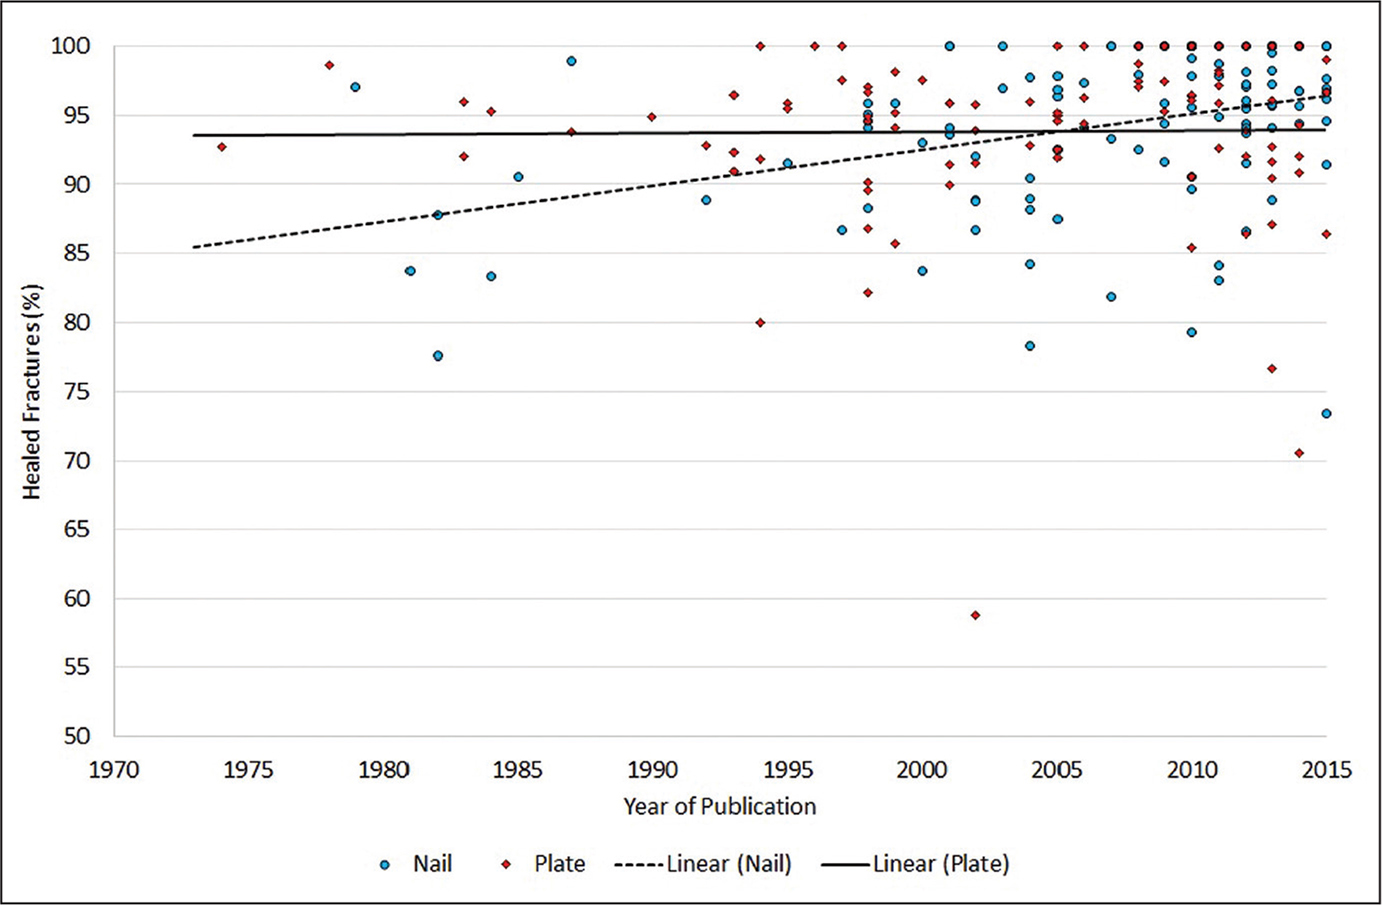 Extracapsular fracture heal rate as a function of year of publication.